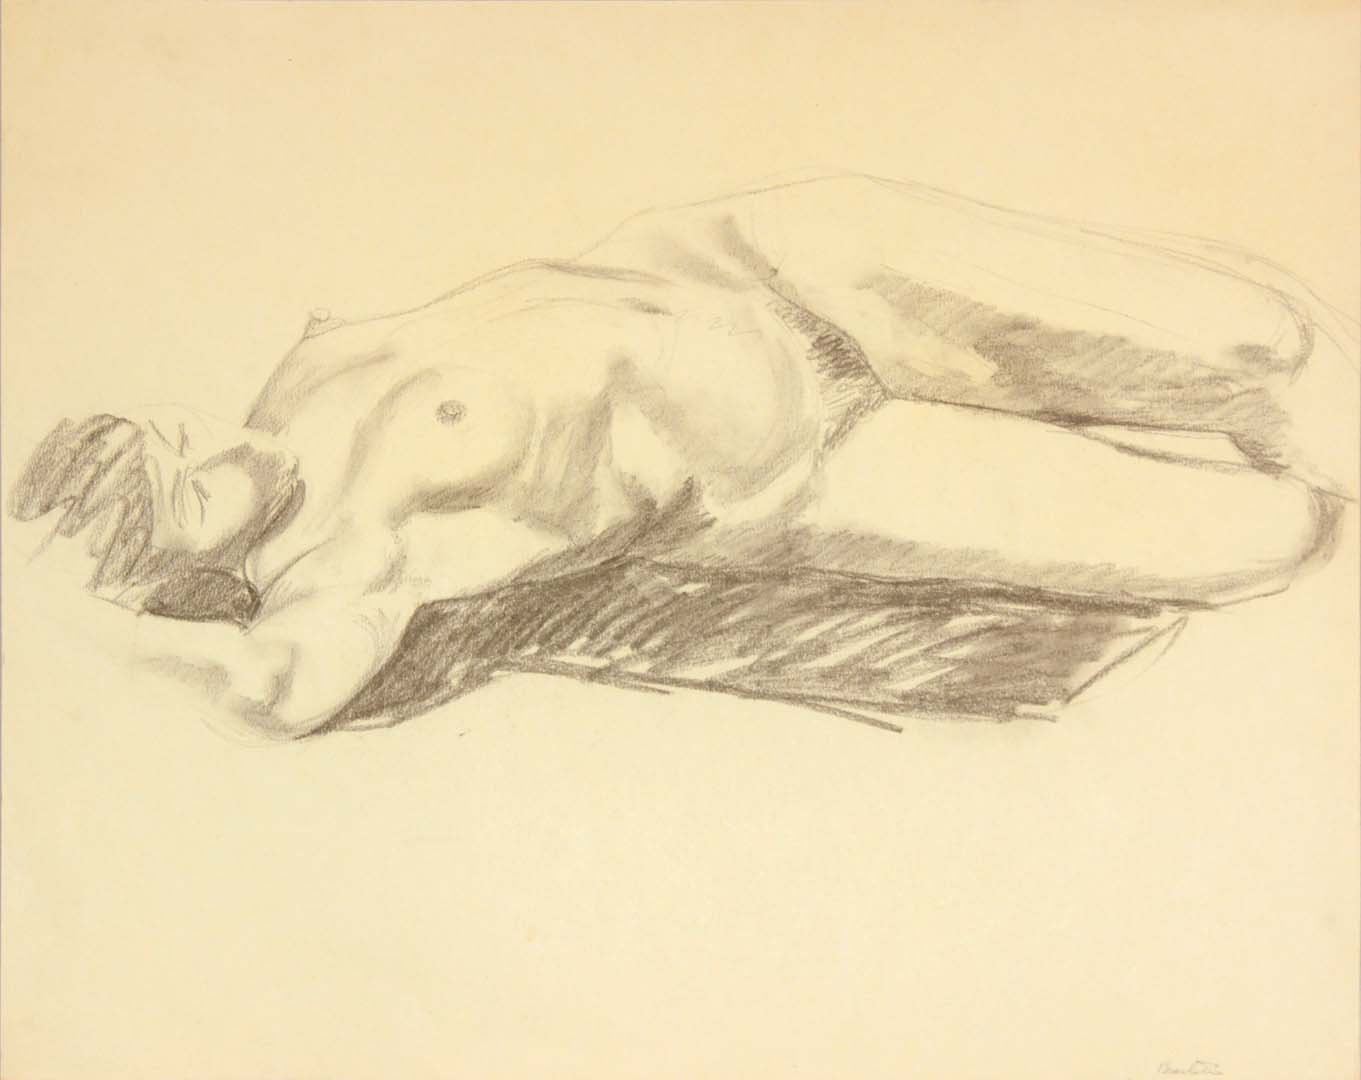 "Reclined Model with Arm Over Head Graphite 19"" x 24"""